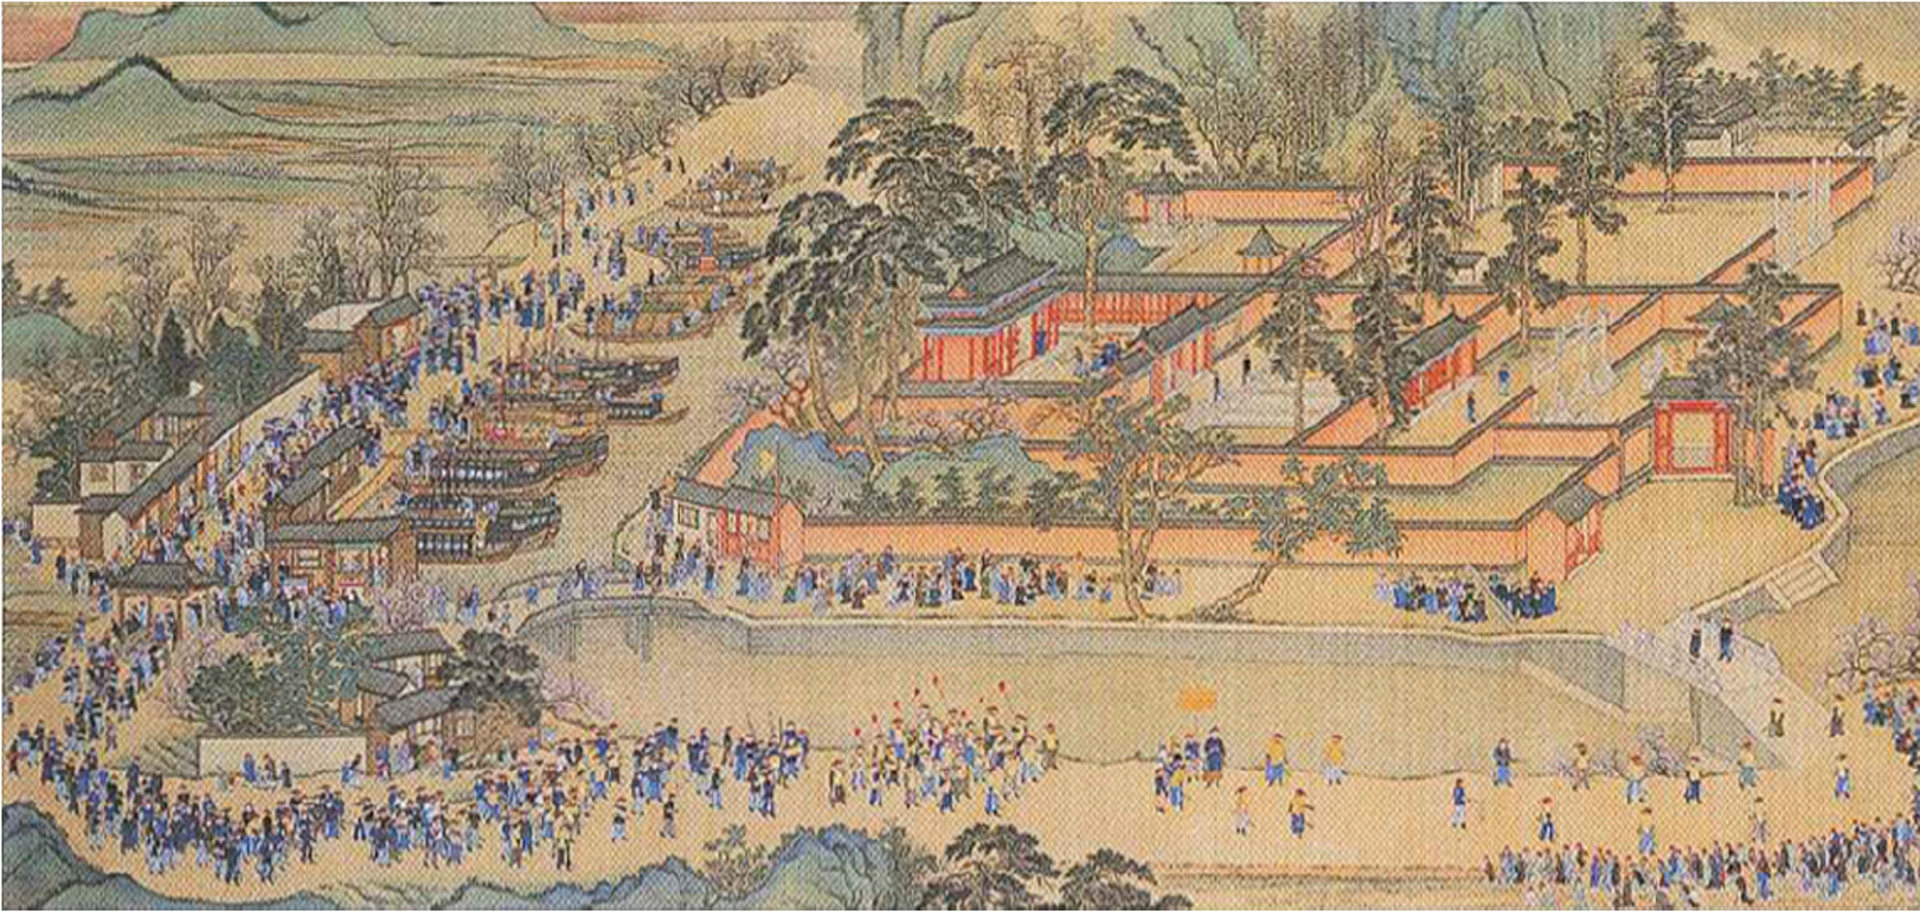 ©ISEA2016: 22nd International Symposium on Electronic Art, Peter Nelson and E. H. MacMillan, Starcraft II and Chinese Scroll Painting: Narrative Ideas for RTS Computer Games